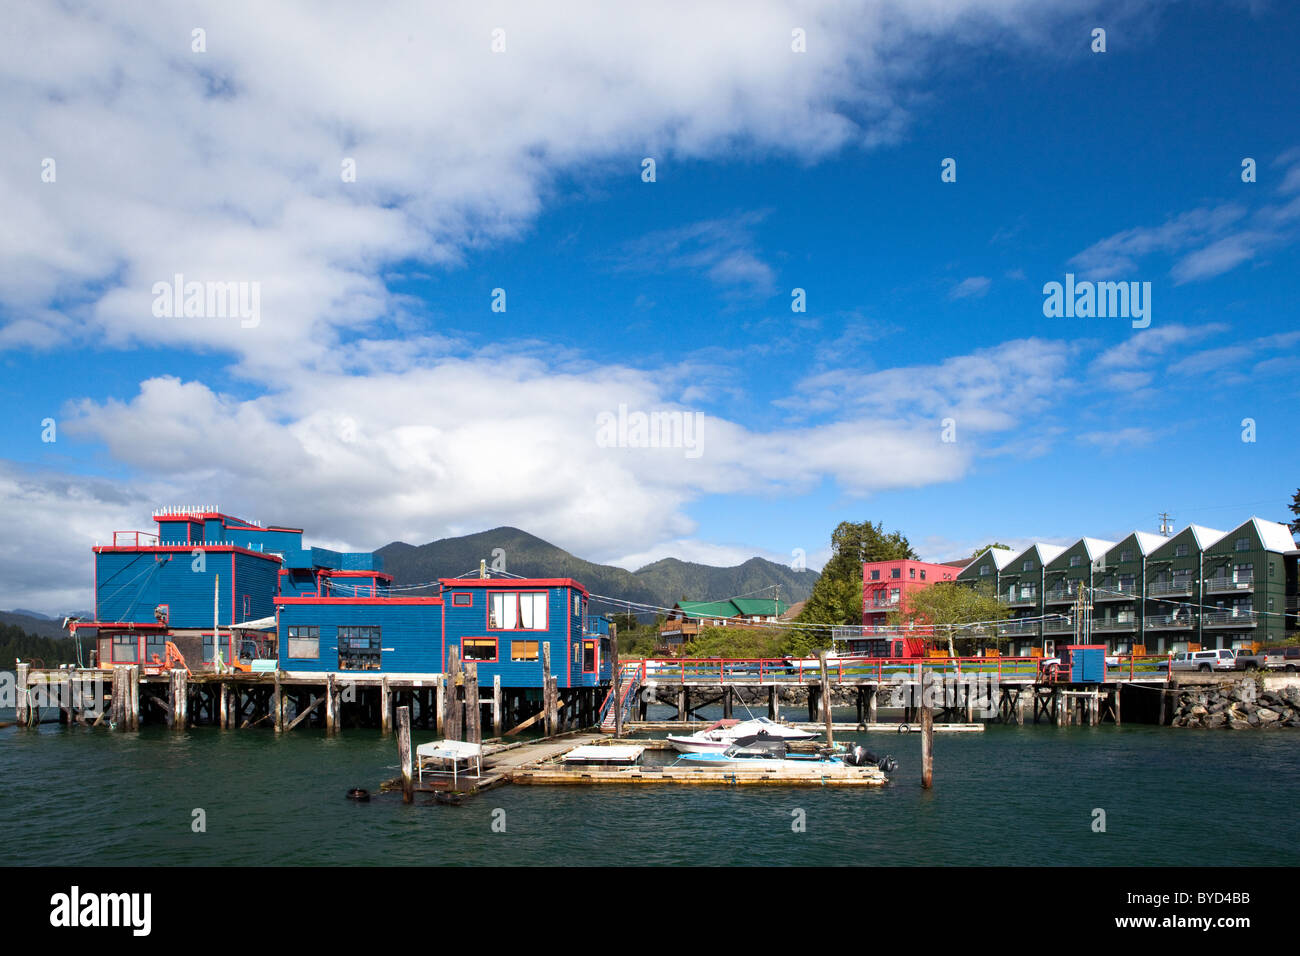 Boats at a floating pier in Tofino, BC, Canada - Stock Image